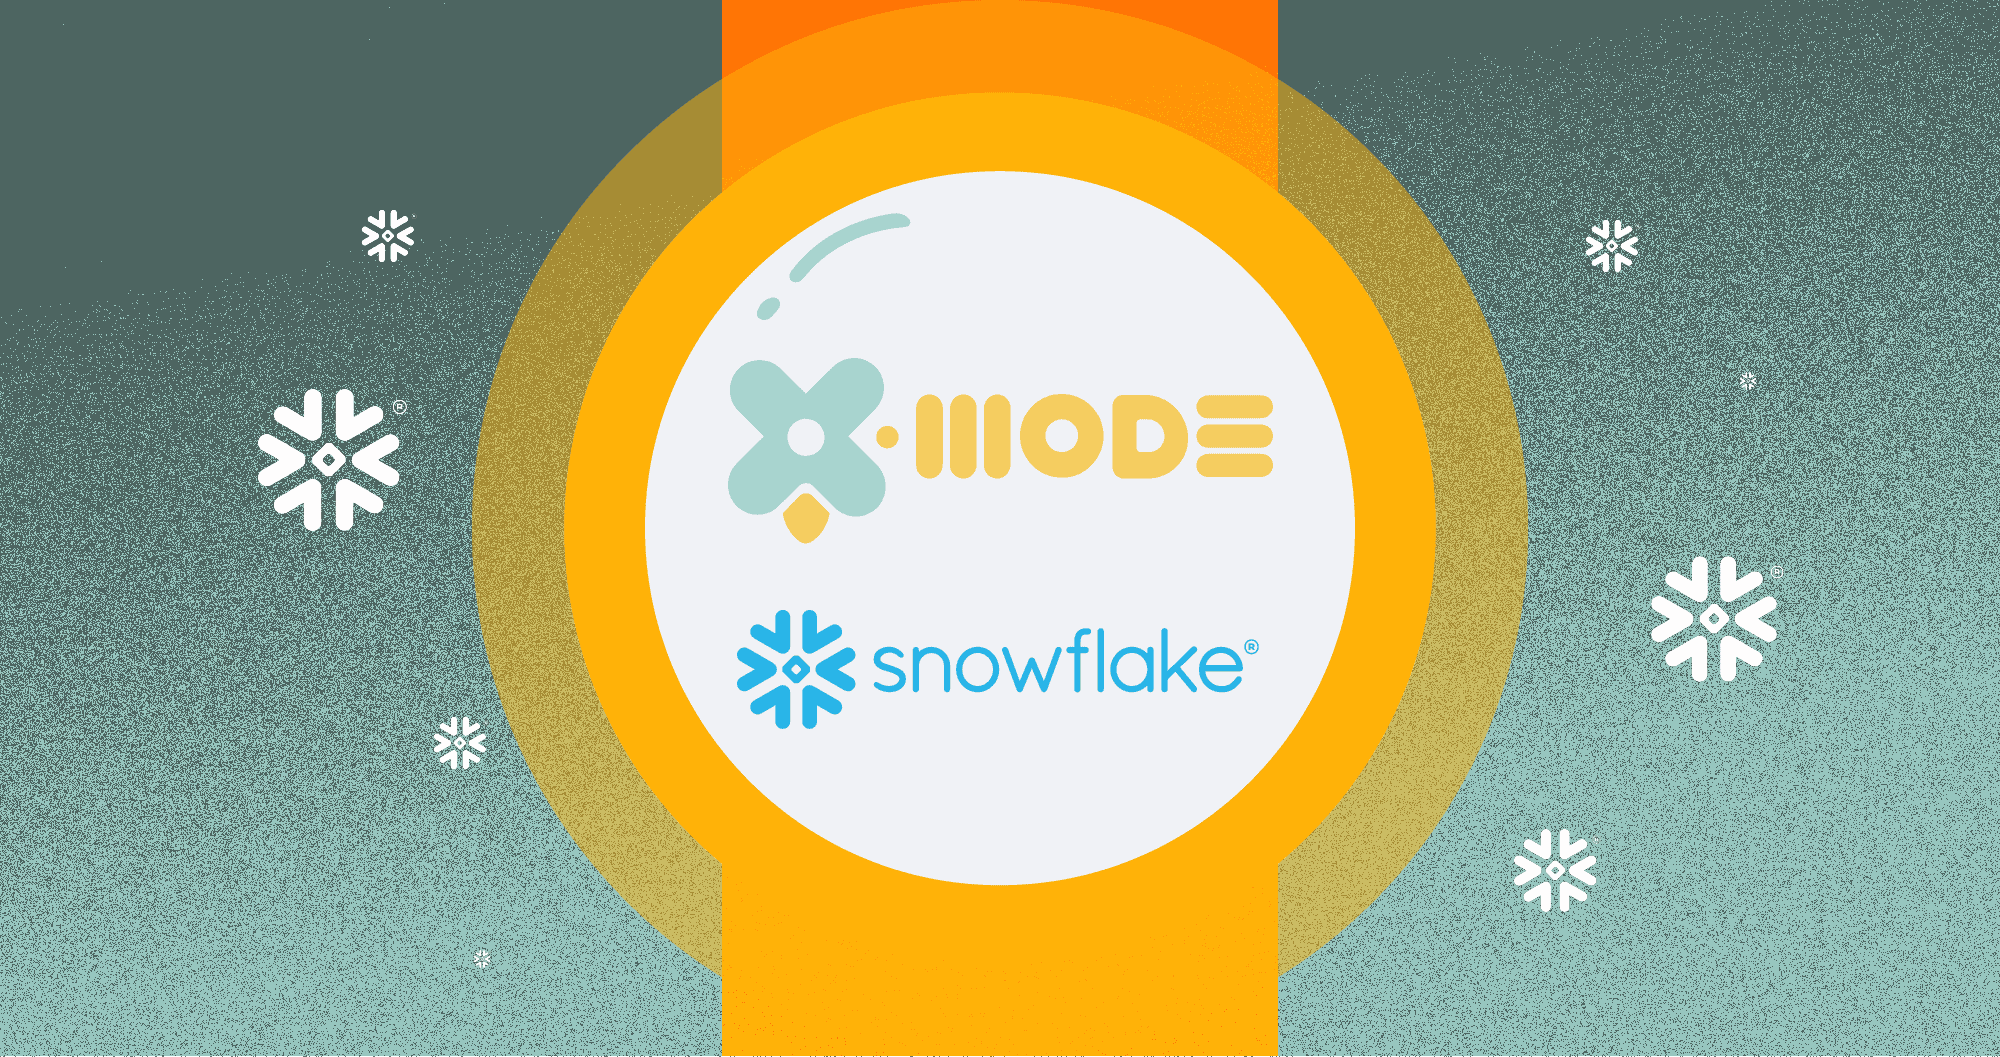 snowflake data marketplace and x-mode announce partnership